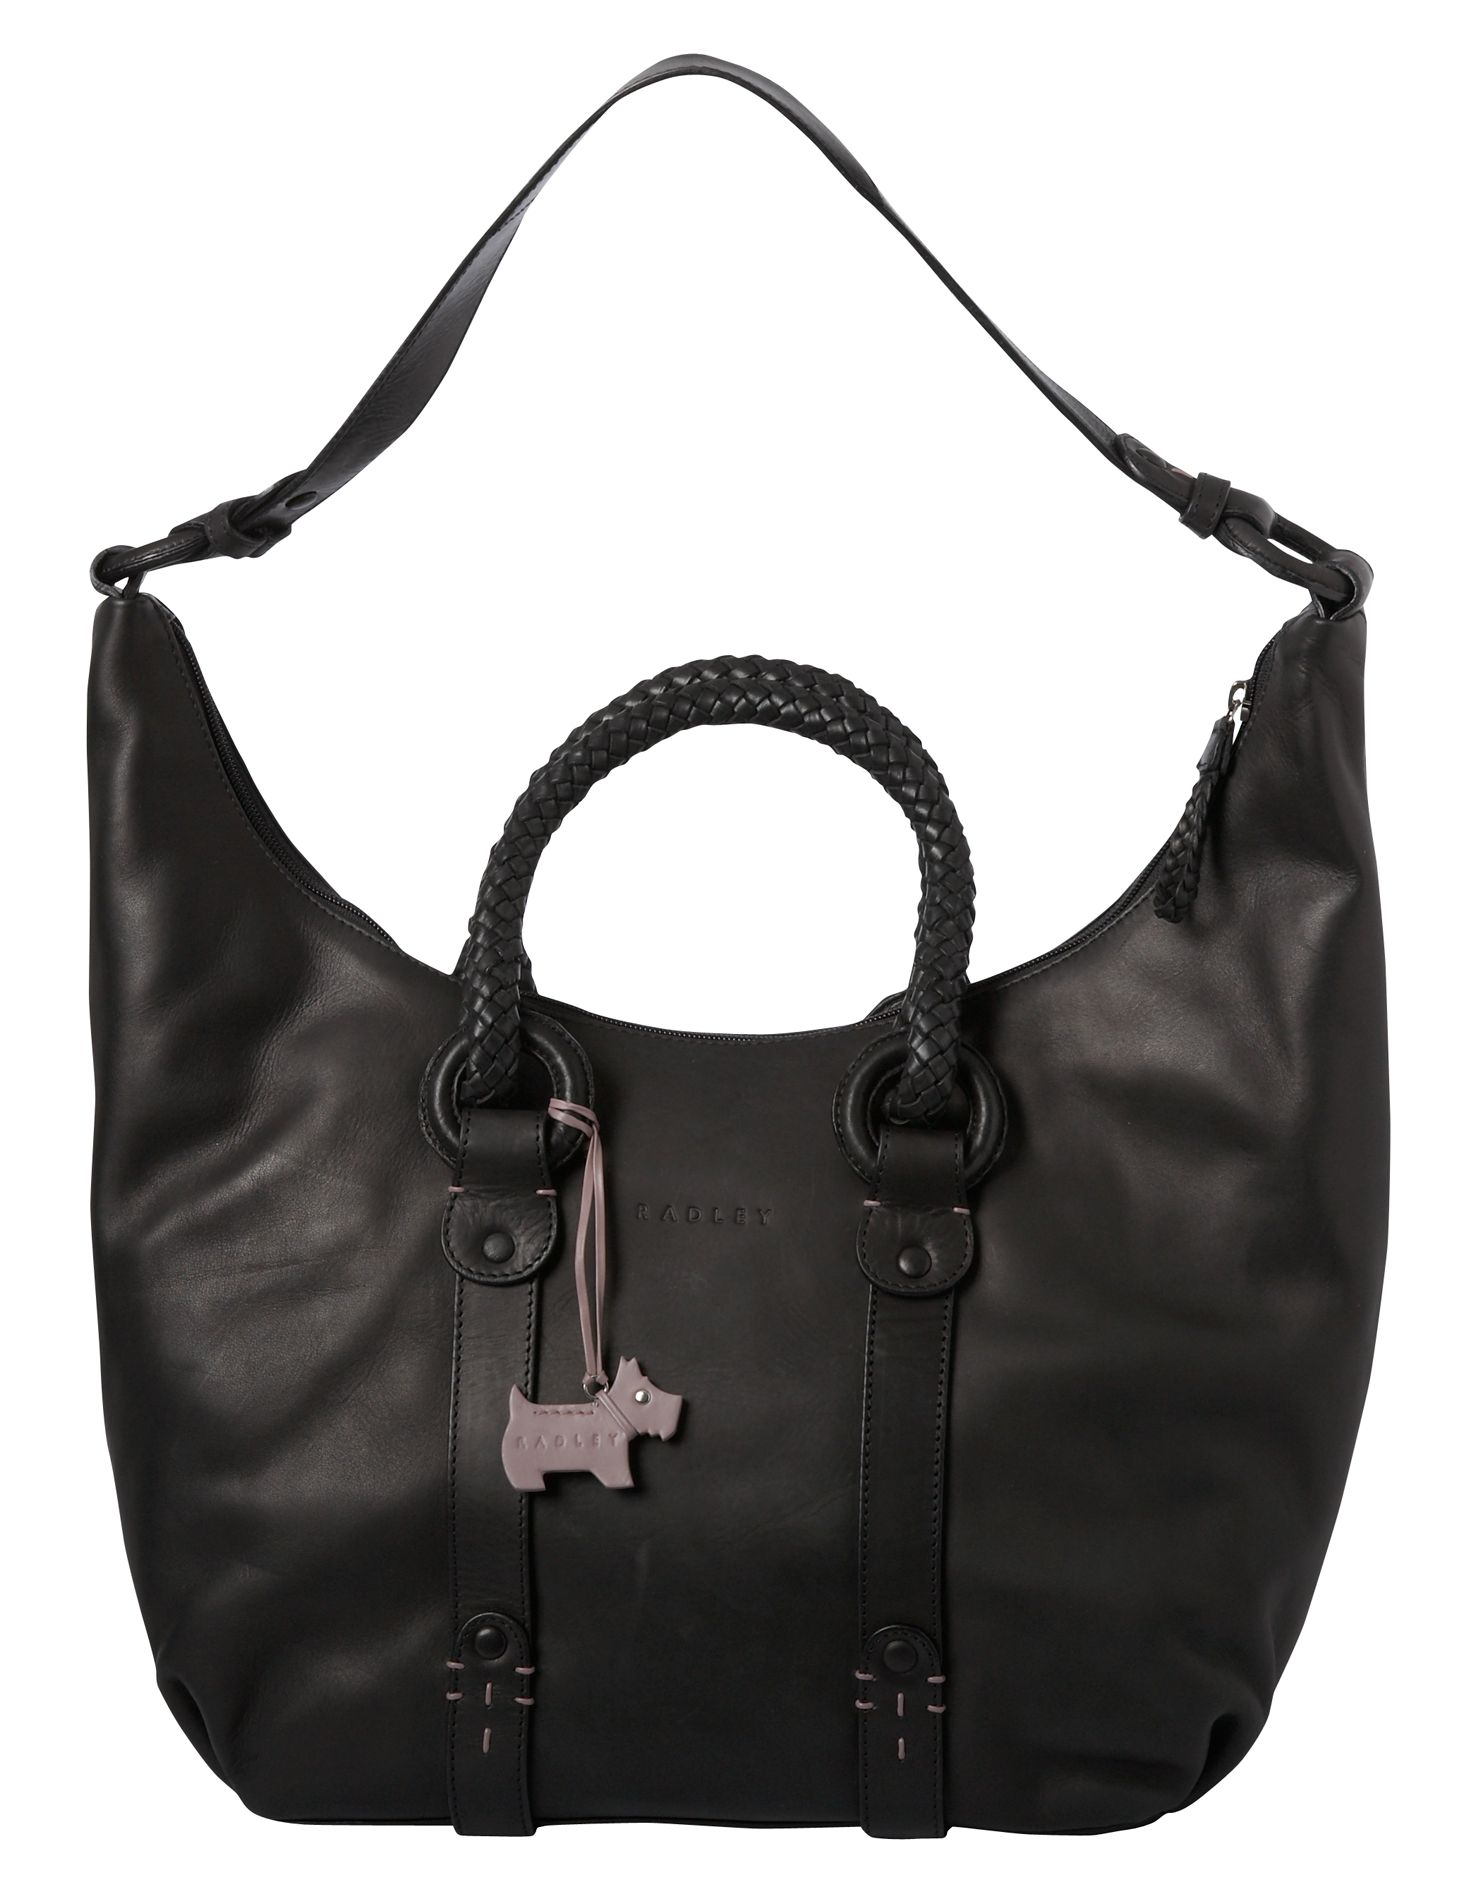 Poppy large leather shoulder hobo bag